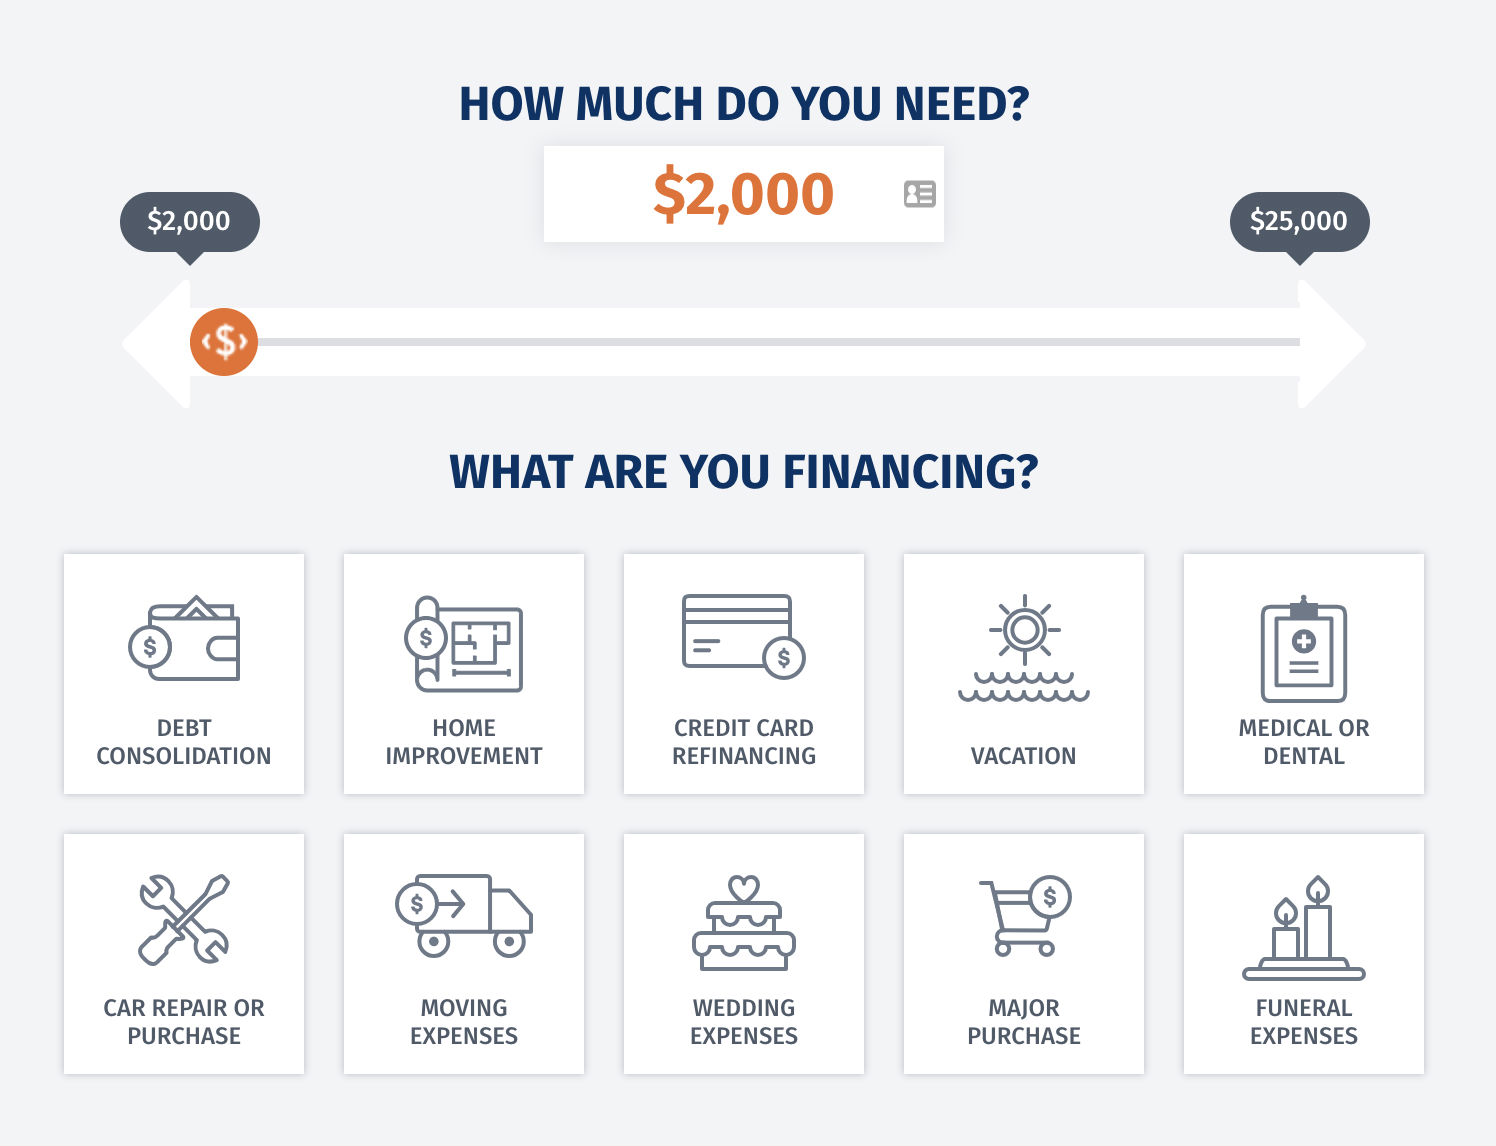 LendingPoint Financing Options